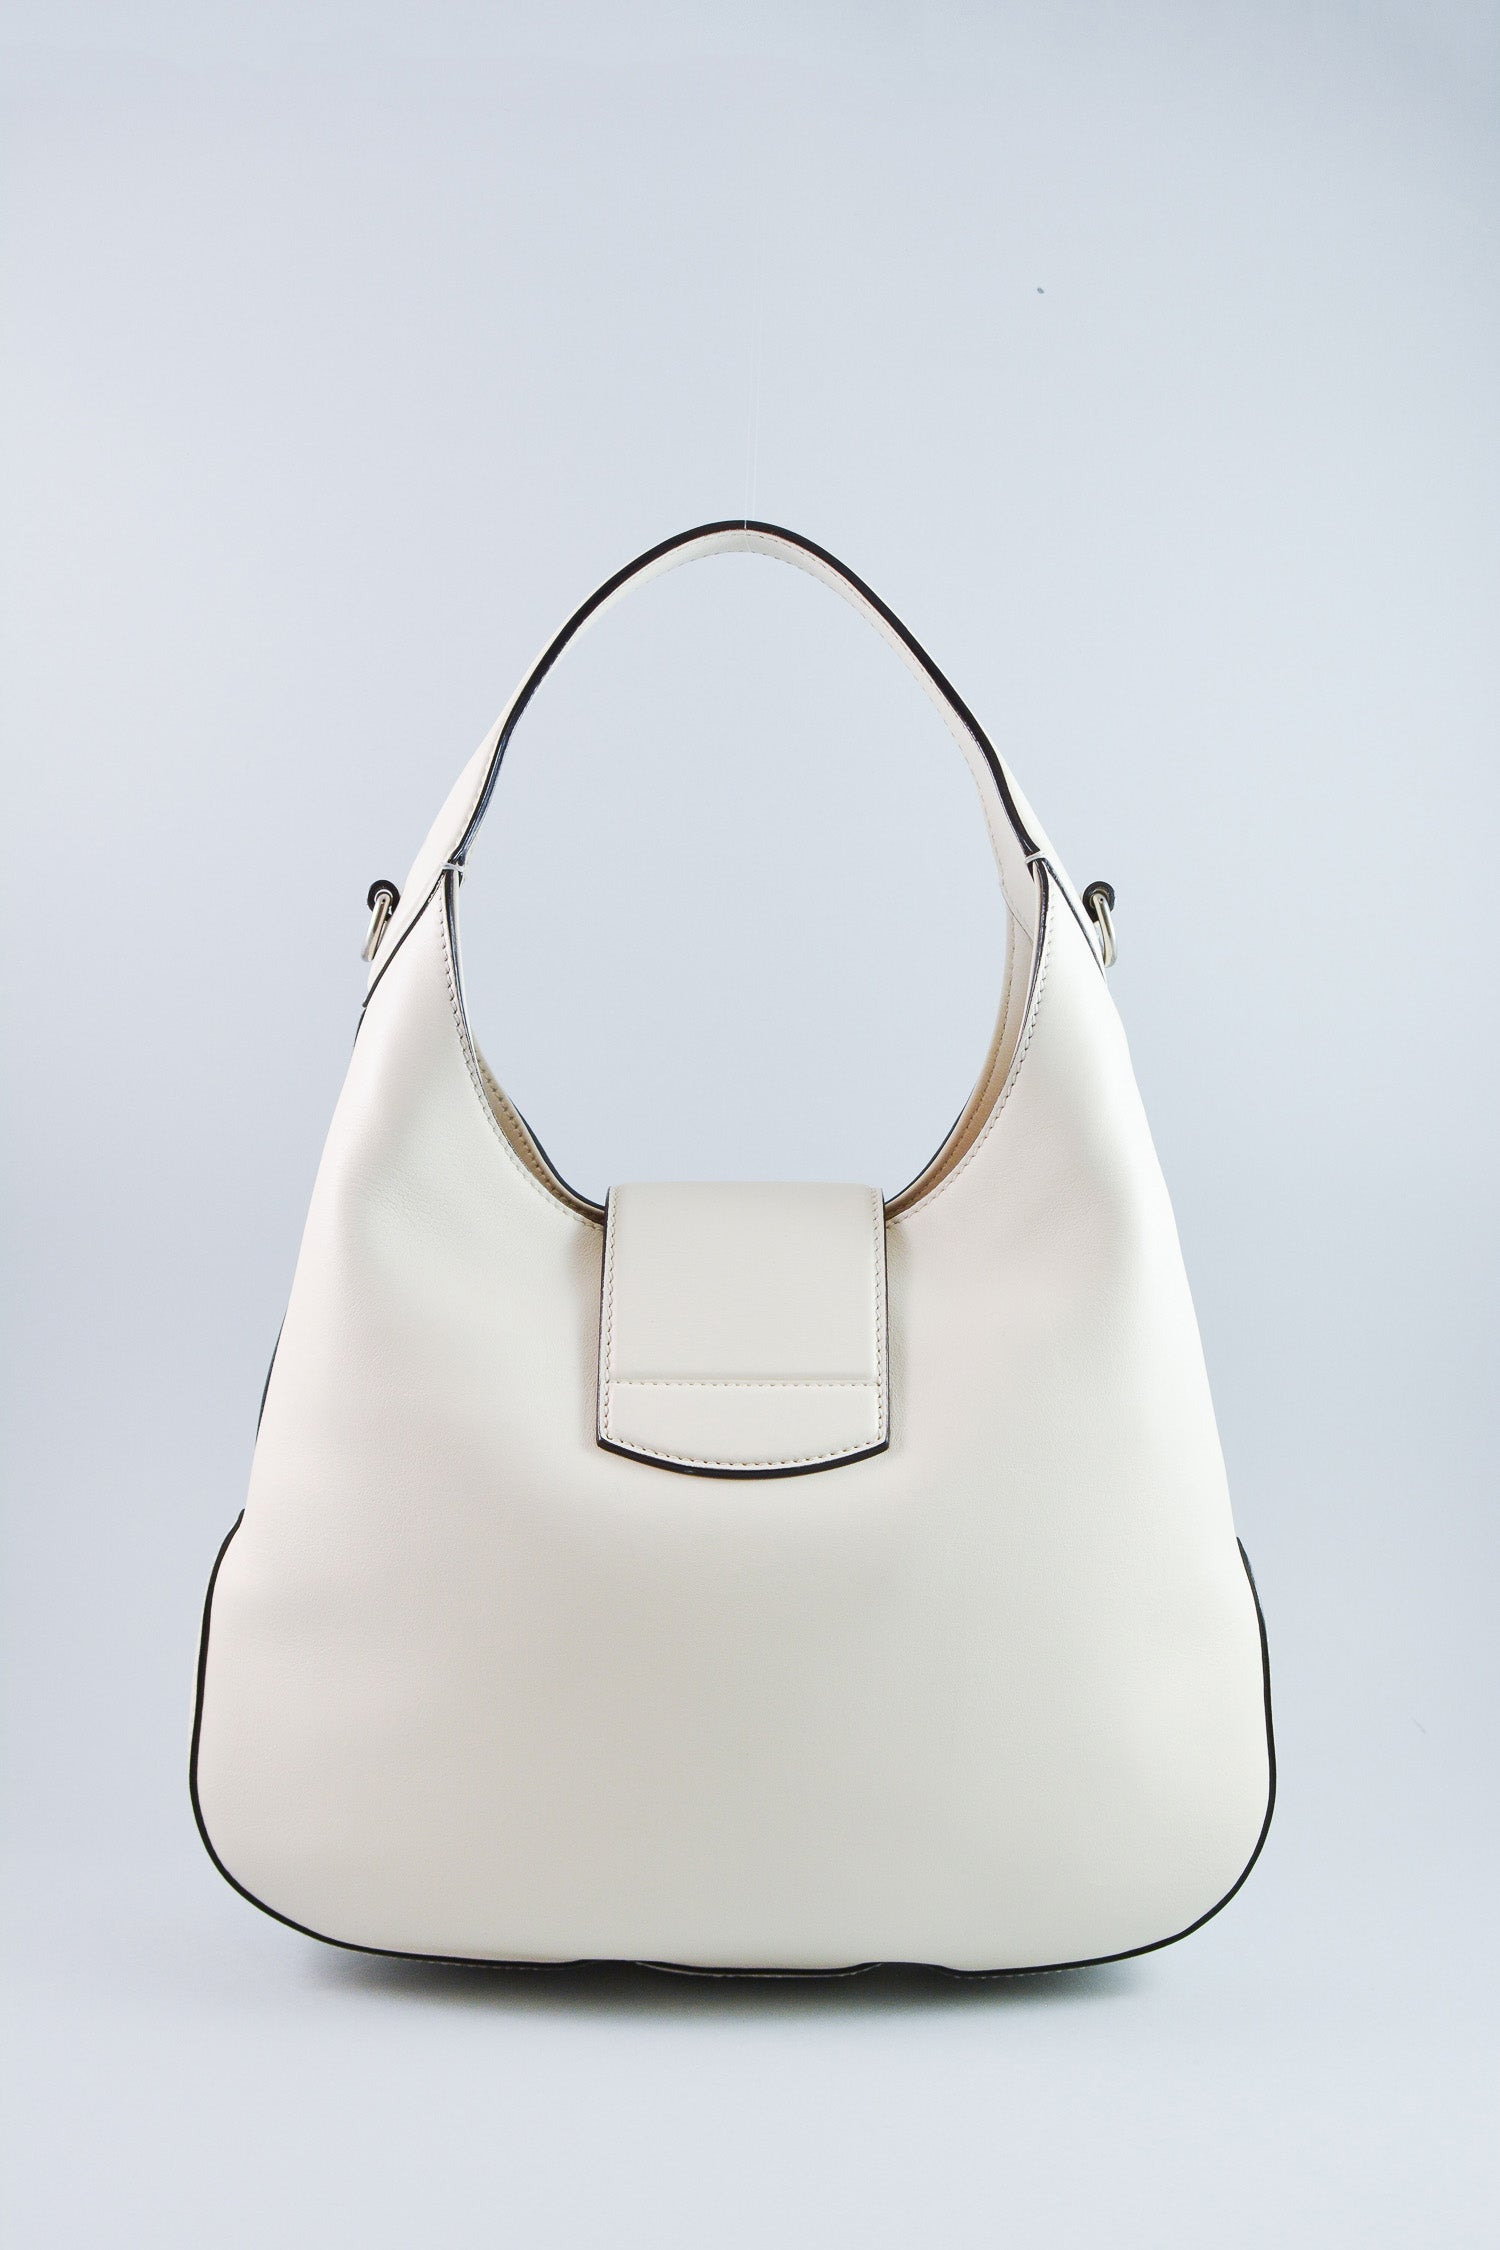 Gucci Dionysus White Web Hobo